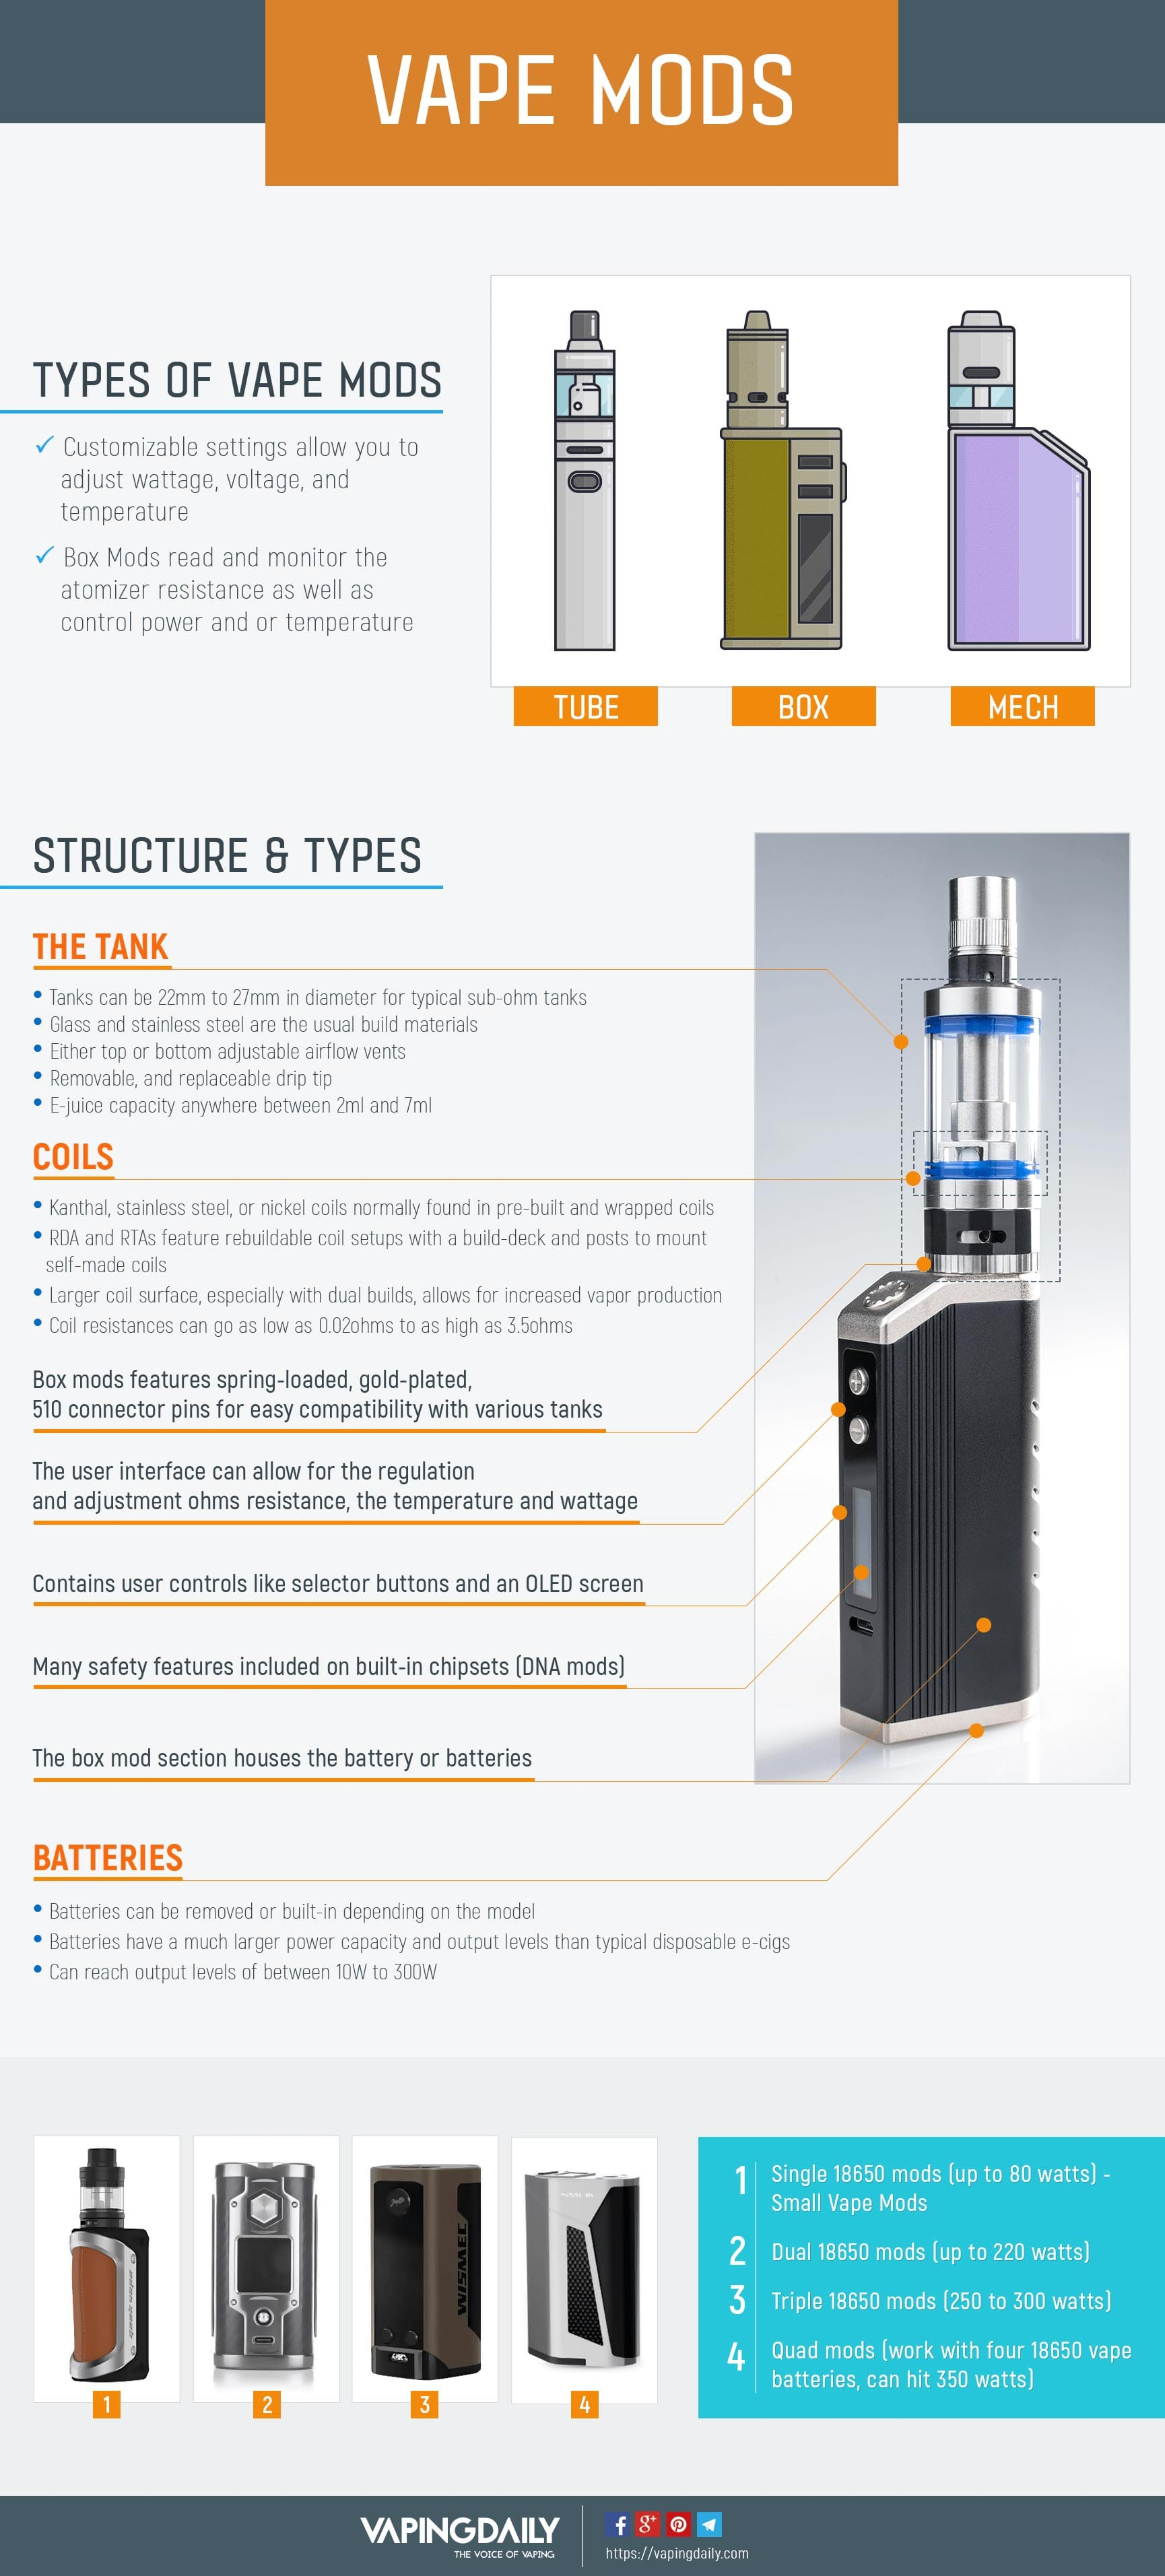 Box Mod and Vape Mod Types - Infographic